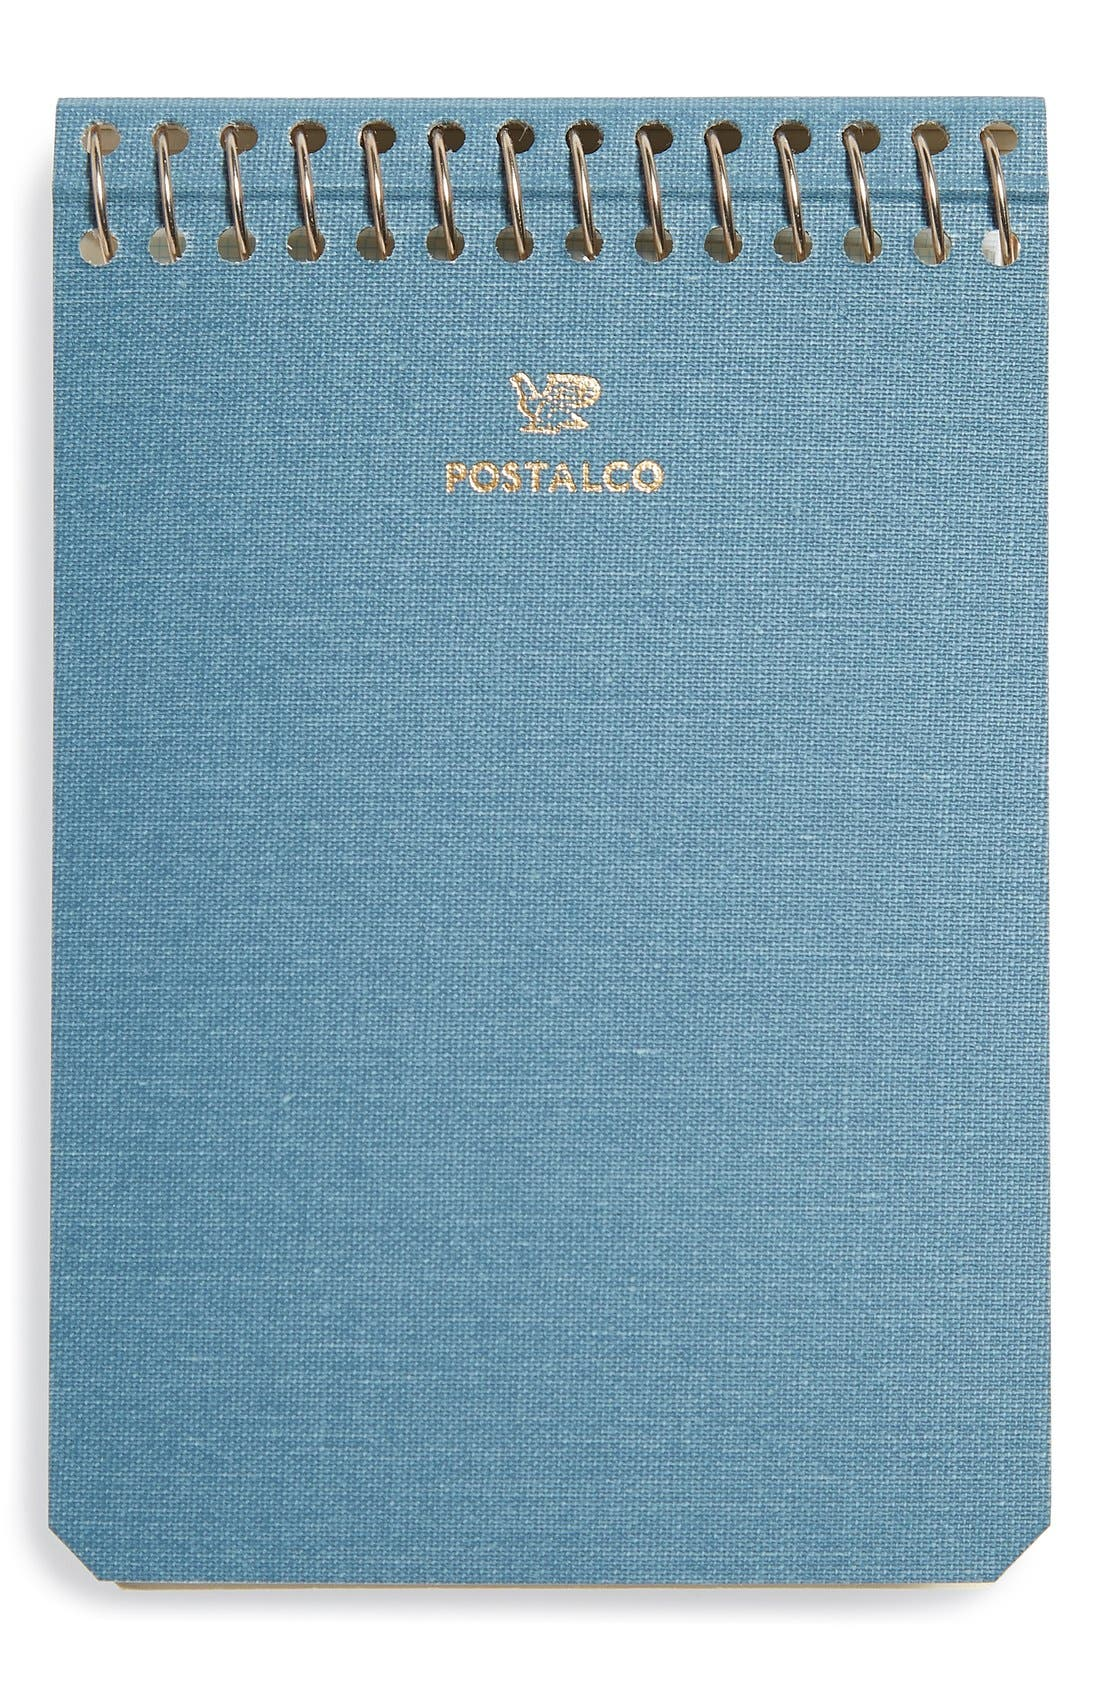 POSTALCO A7 Flip Top Notebook, Main, color, 450